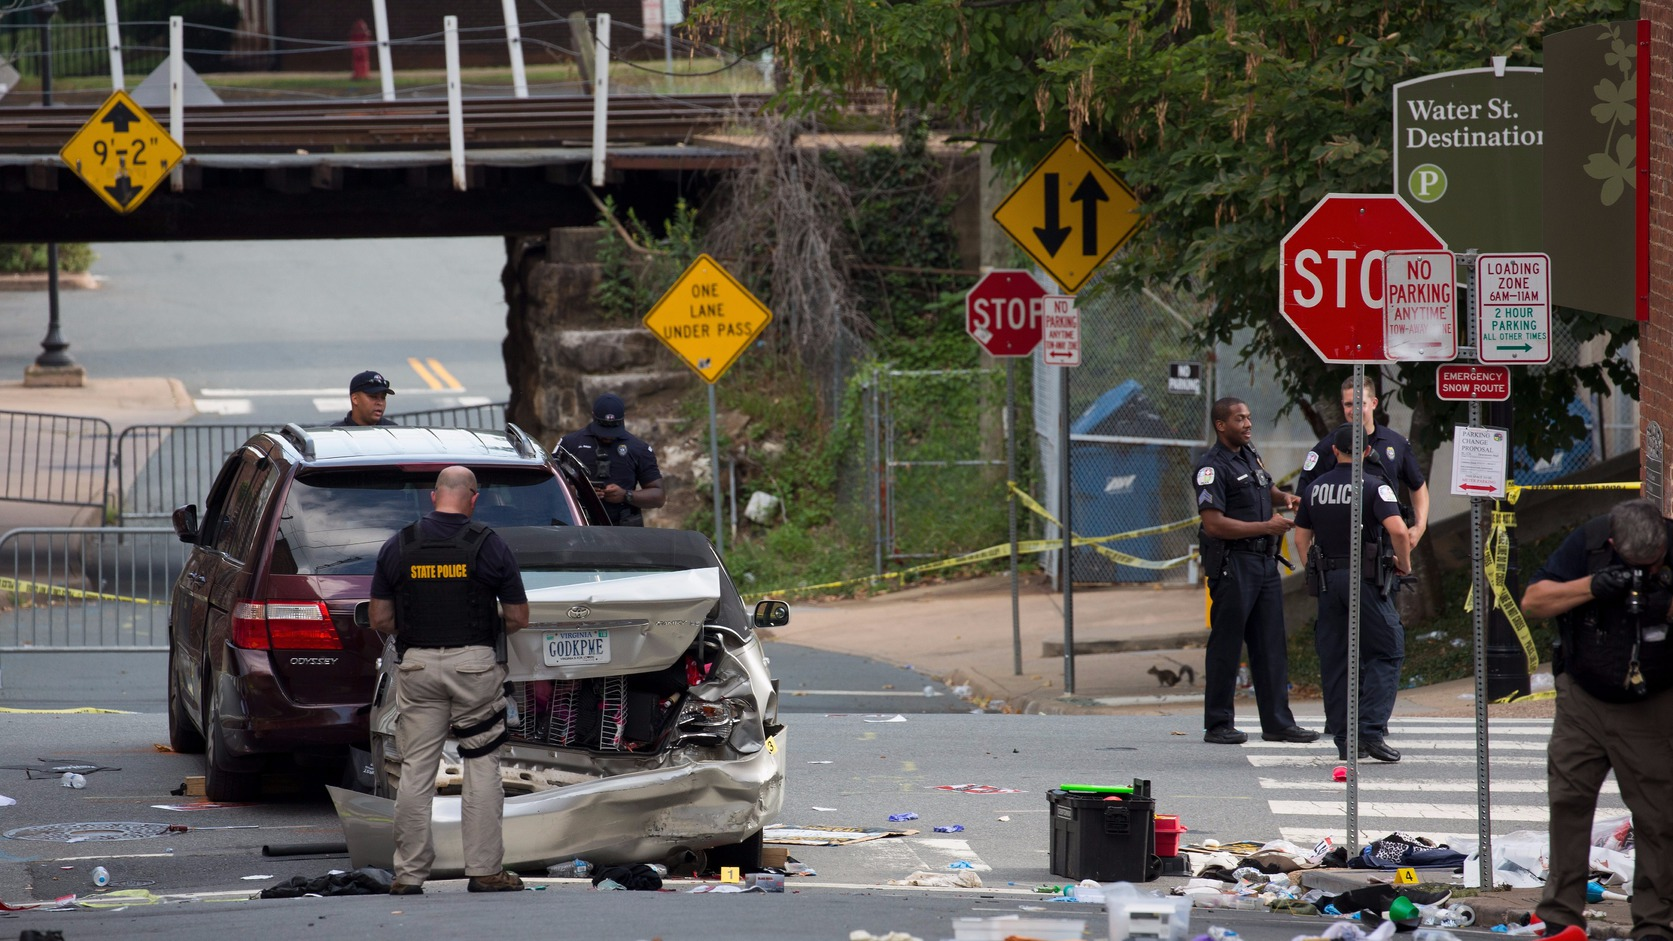 epa06141385 Virginia State Police inspect the site where a vehicle hit protesters in Charlottesville, Virginia, USA, 12 August 2017. According to media reports at least one person was killed and 19 injured after a car hit a crowd of people counter-protesting the 'Unite the Right' rally which was scheduled to take place in Charlottesville on 12 August. At least 15 others were injured in clashes during protests.  EPA/TASOS KATOPODIS